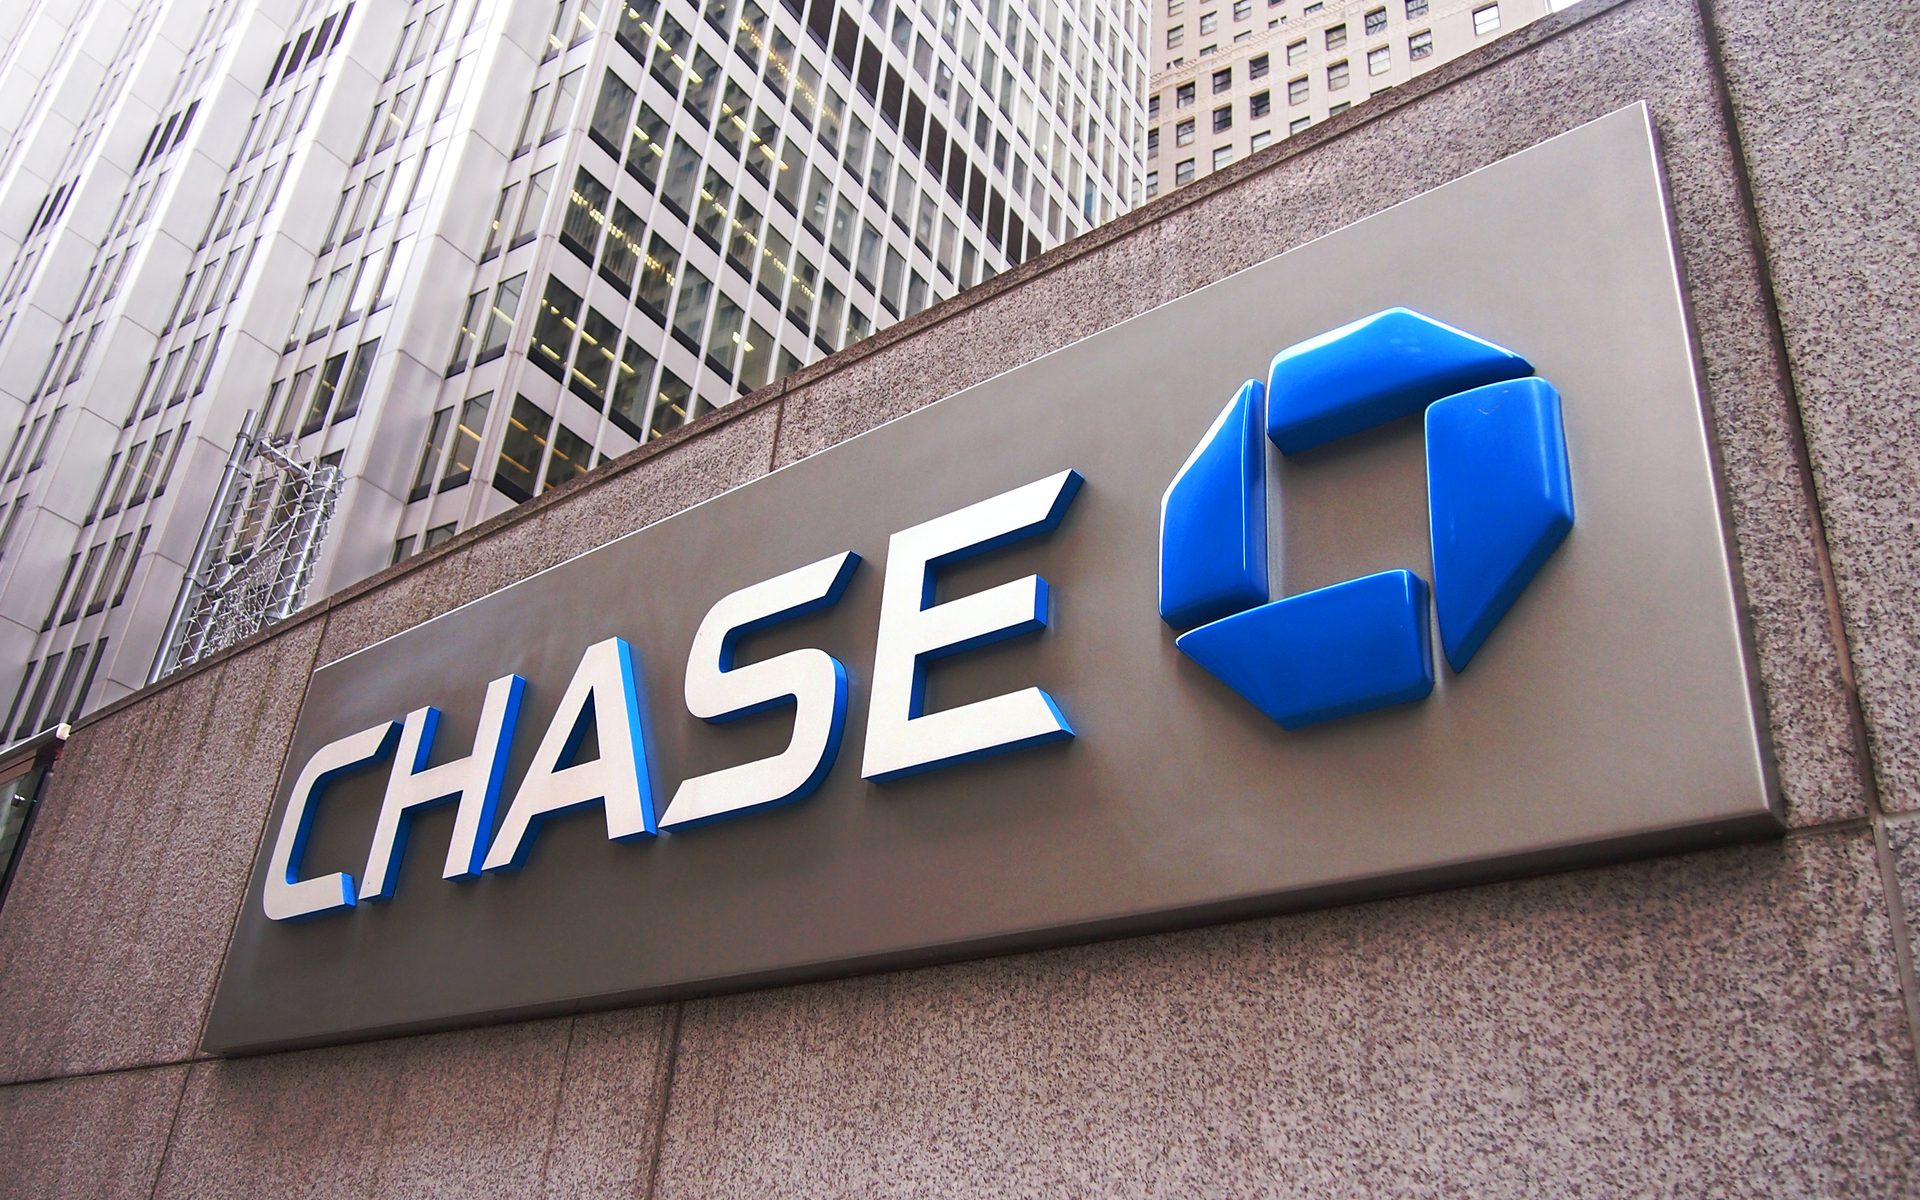 Chase Bank to Settle Crypto Lawsuit By May 2020